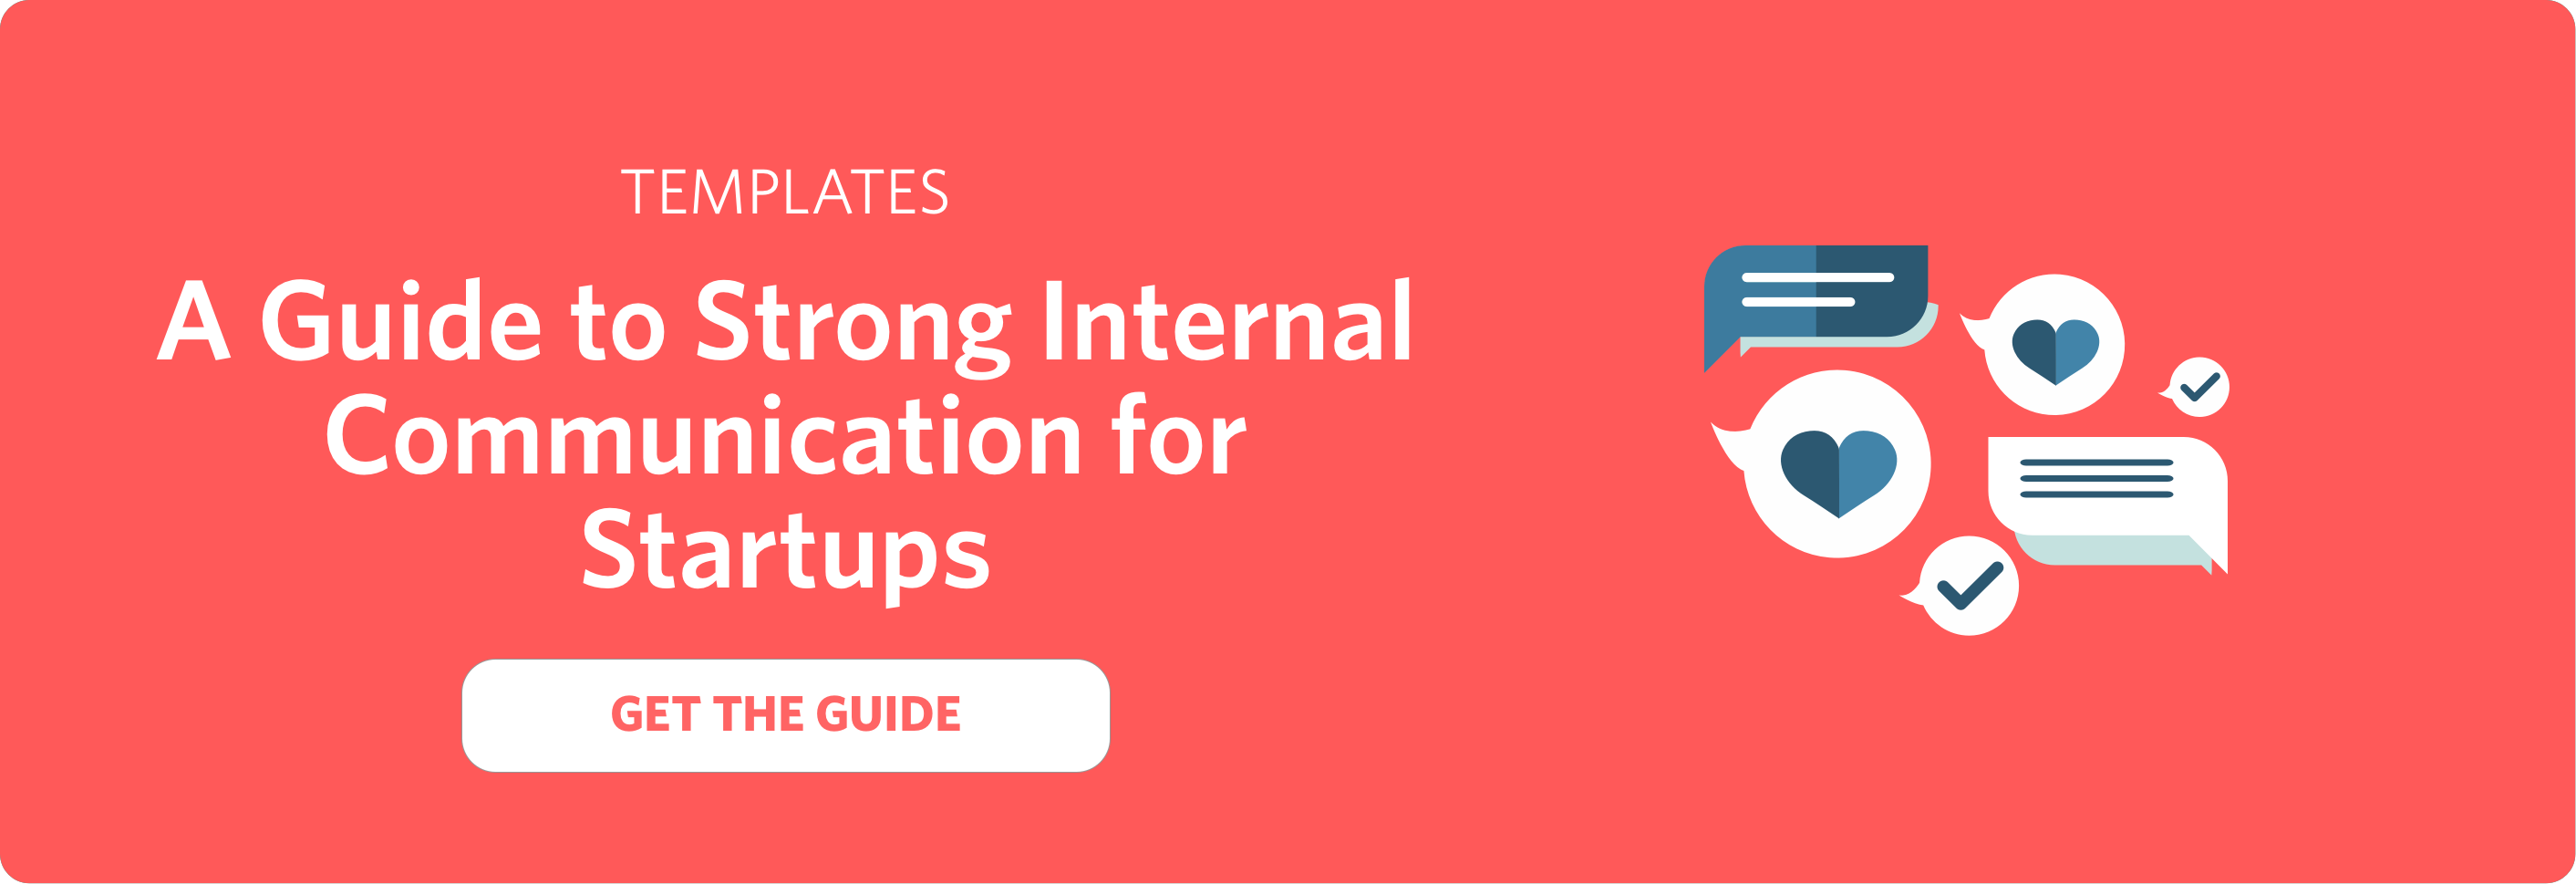 Guide to internal communications for startups